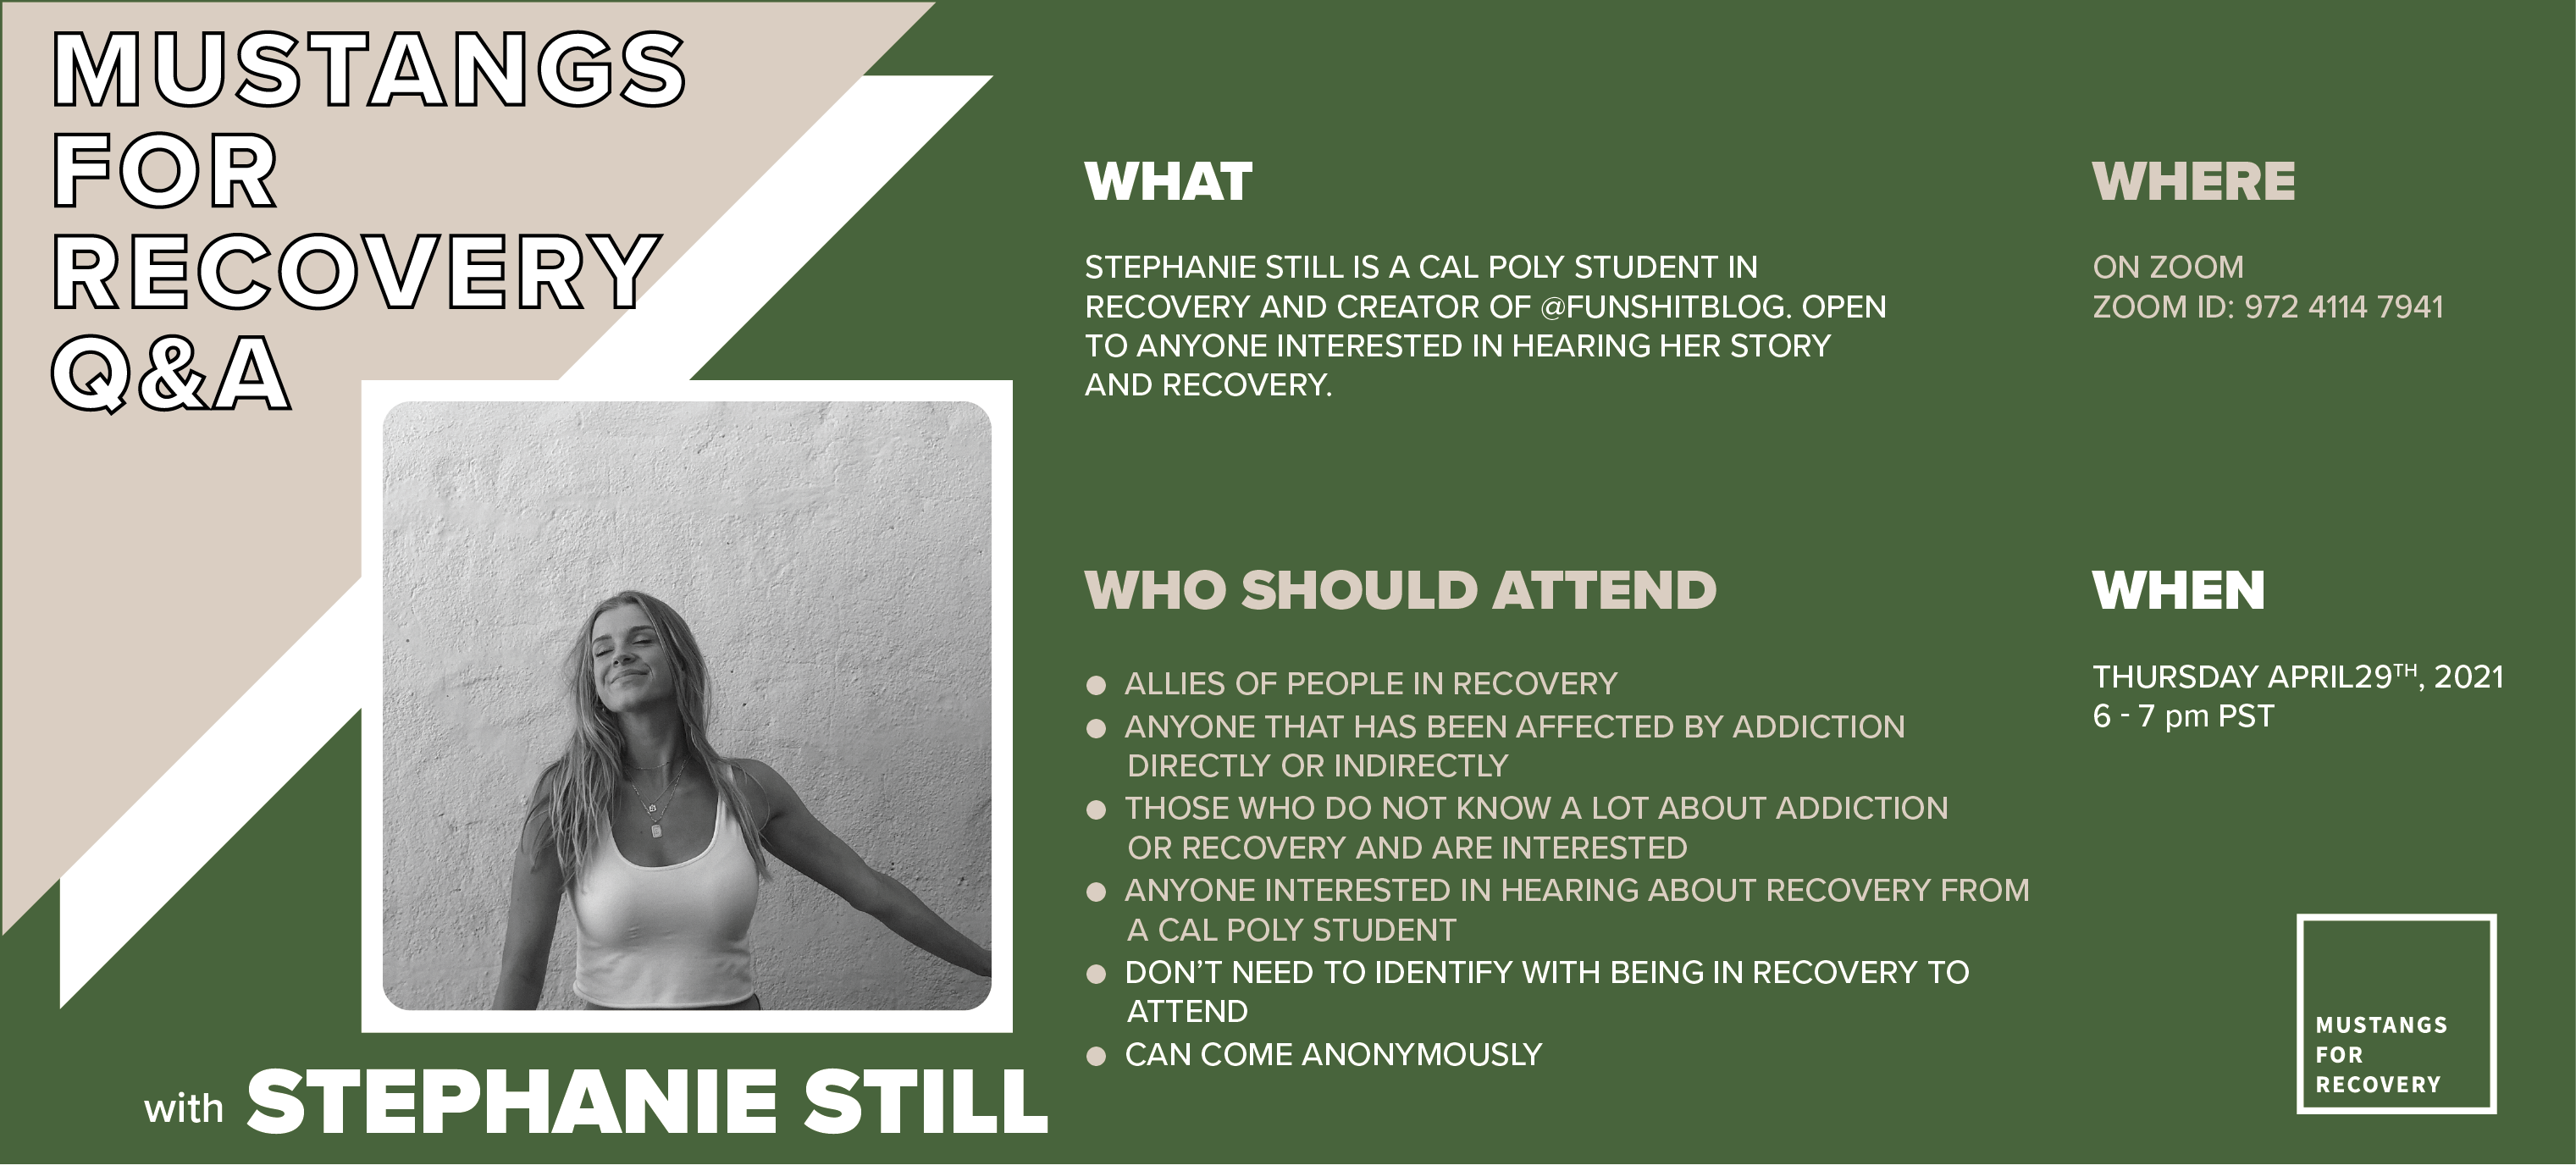 Mustangs for Recovery Q&A advertisement banner with event information